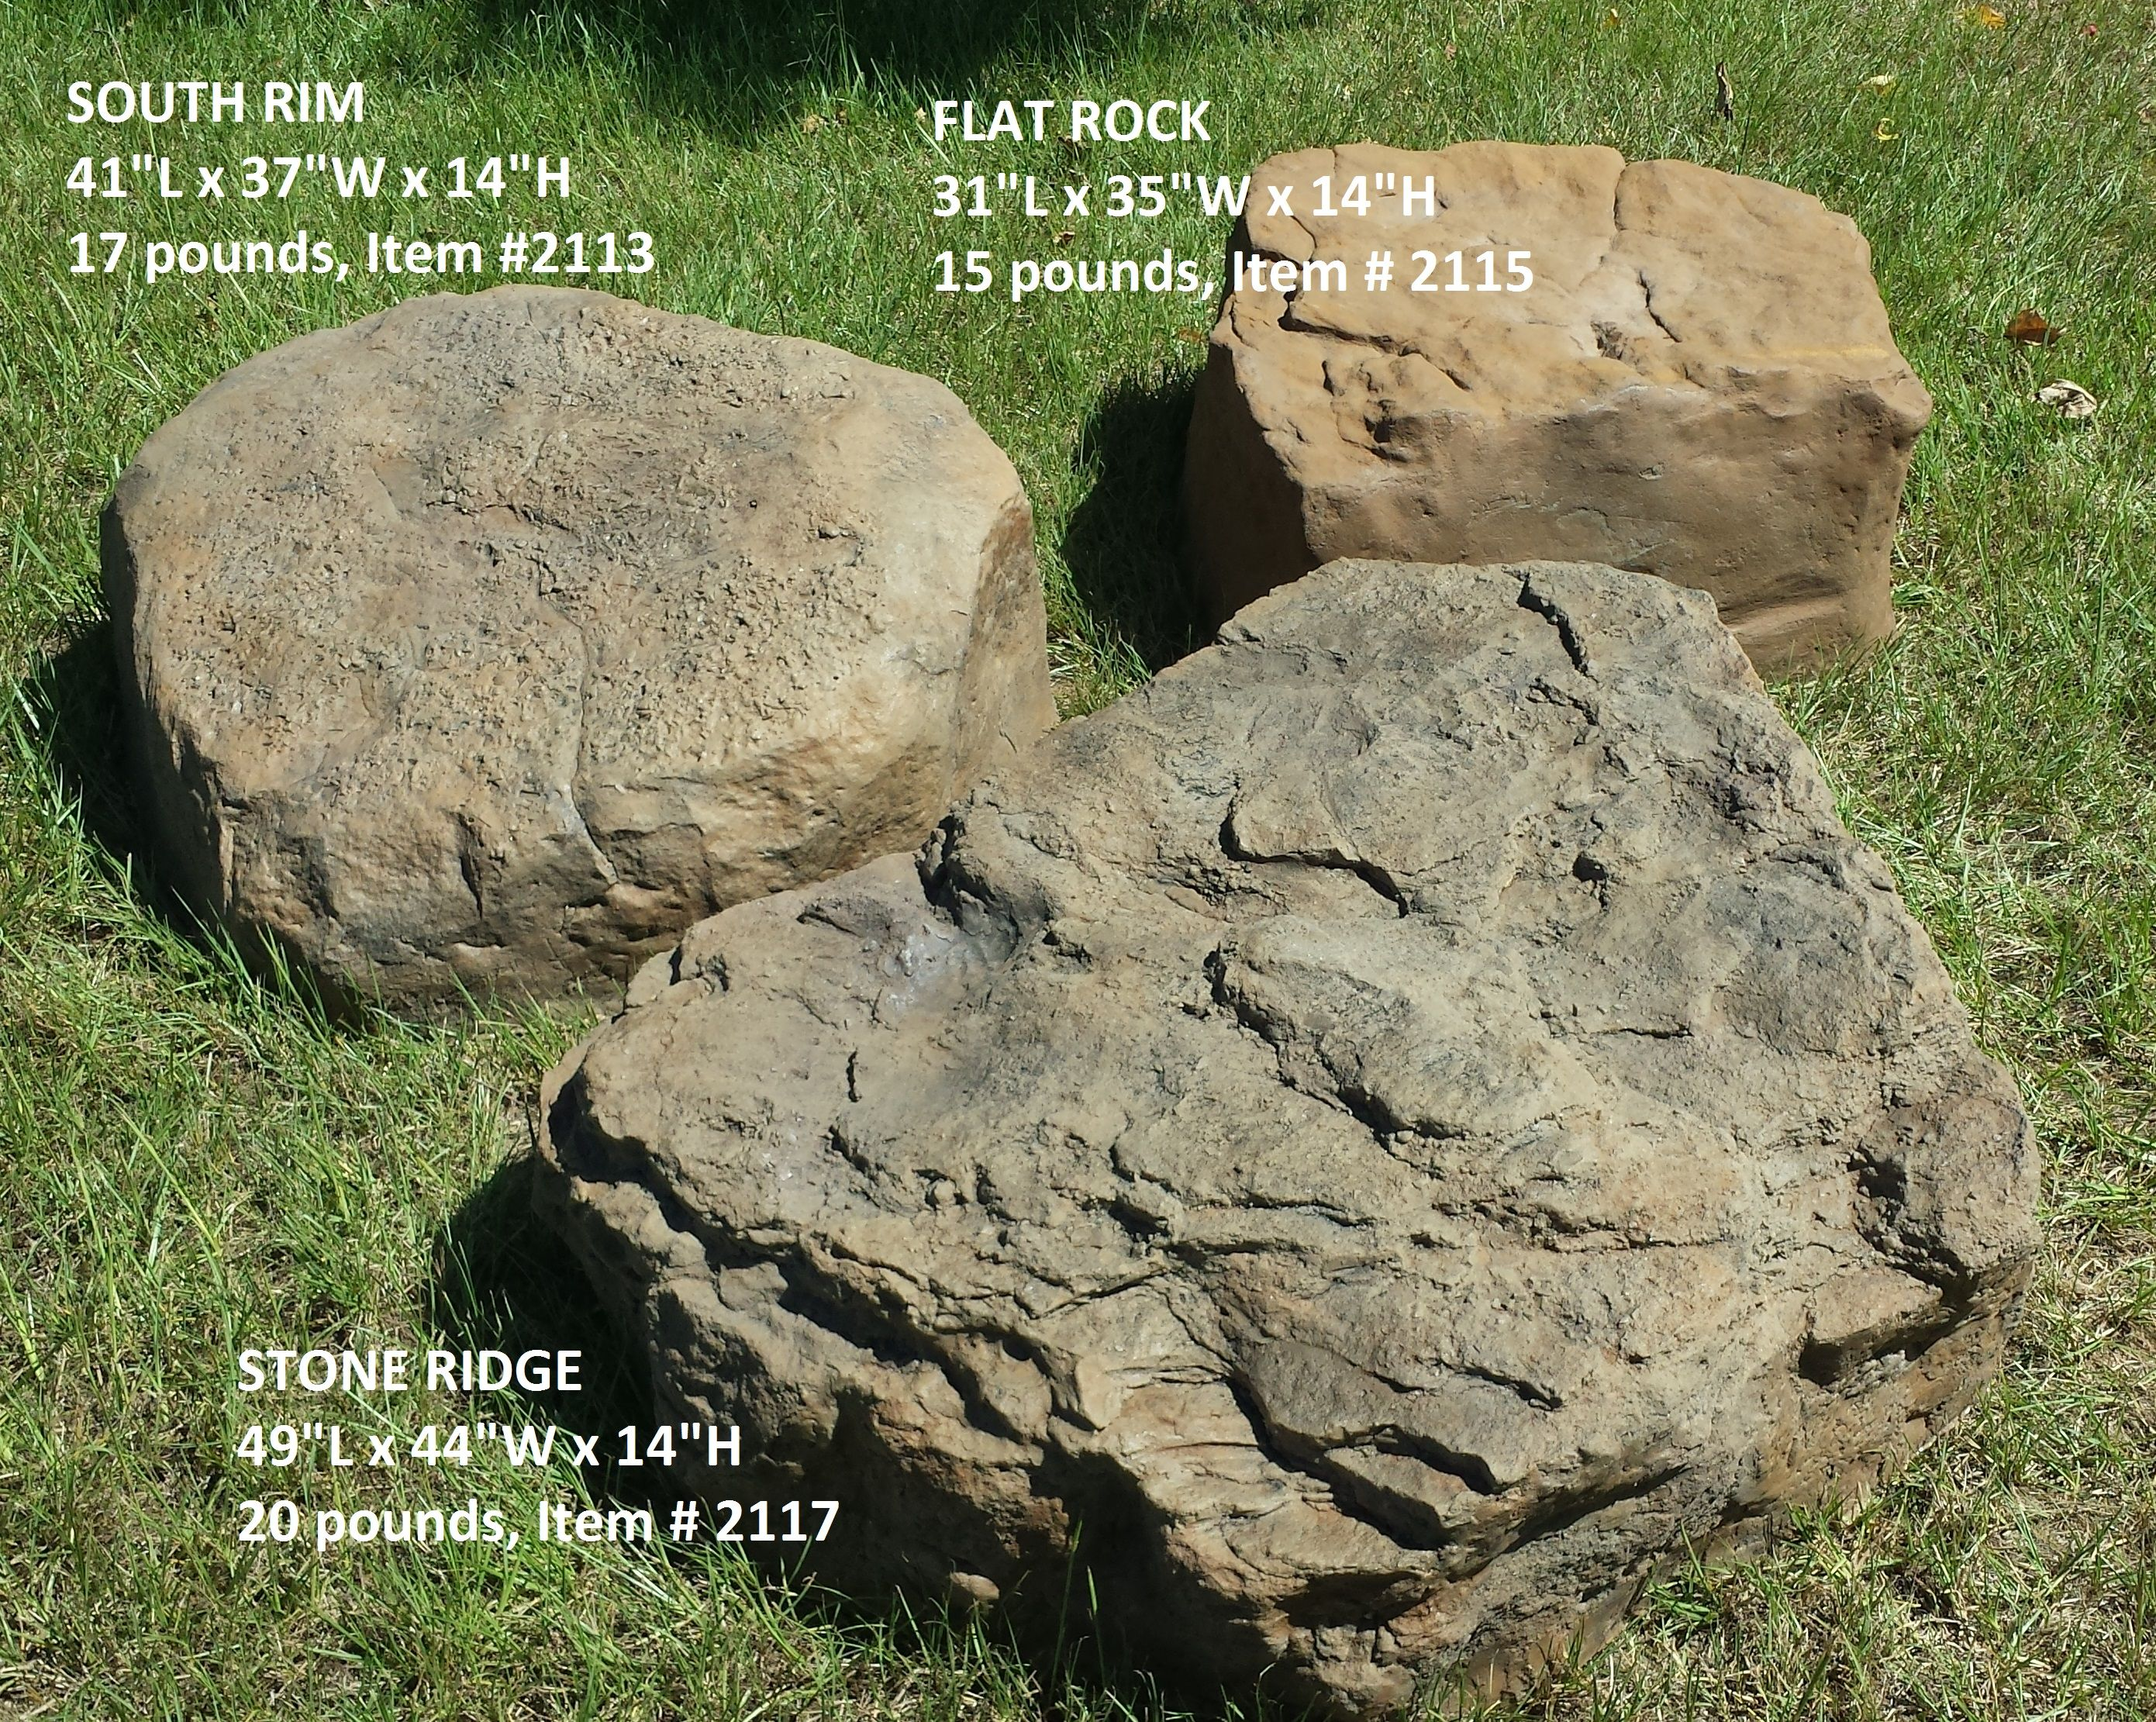 Elegant Fake Rock Septic Lid Cover Rocks. Cover Those Unsightly Septic Lids With A  Natural Looking